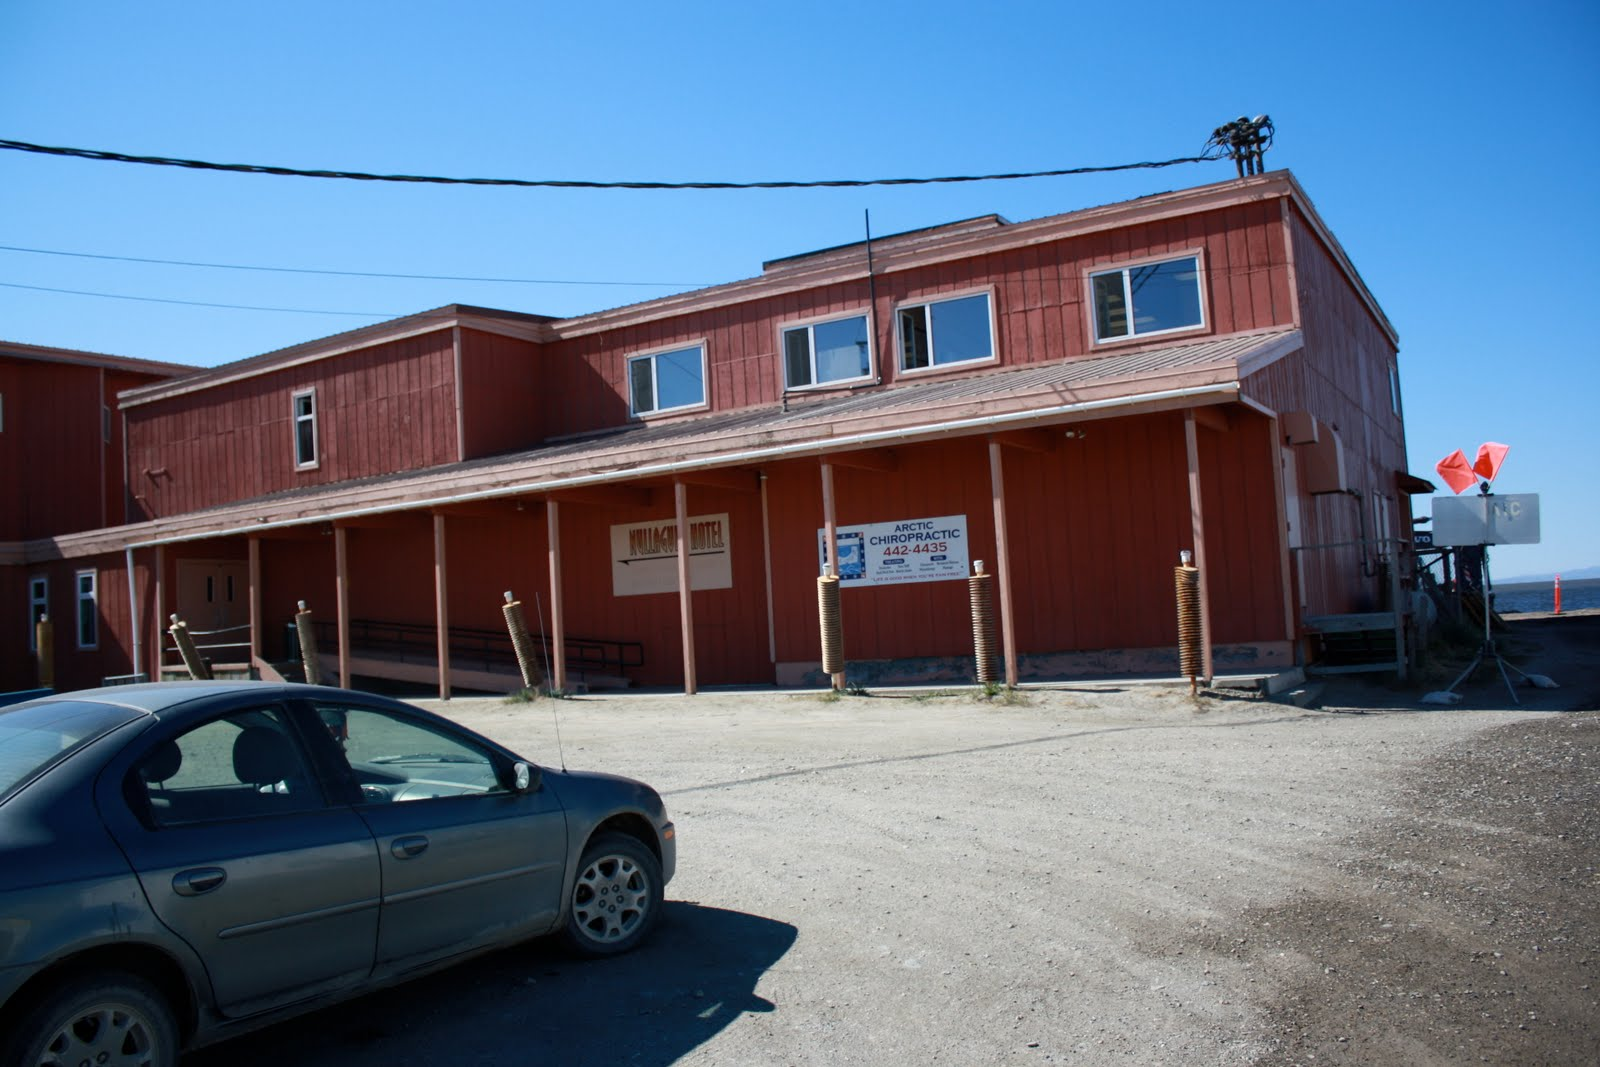 The Nullagvik Hotel Only In Kotzebue